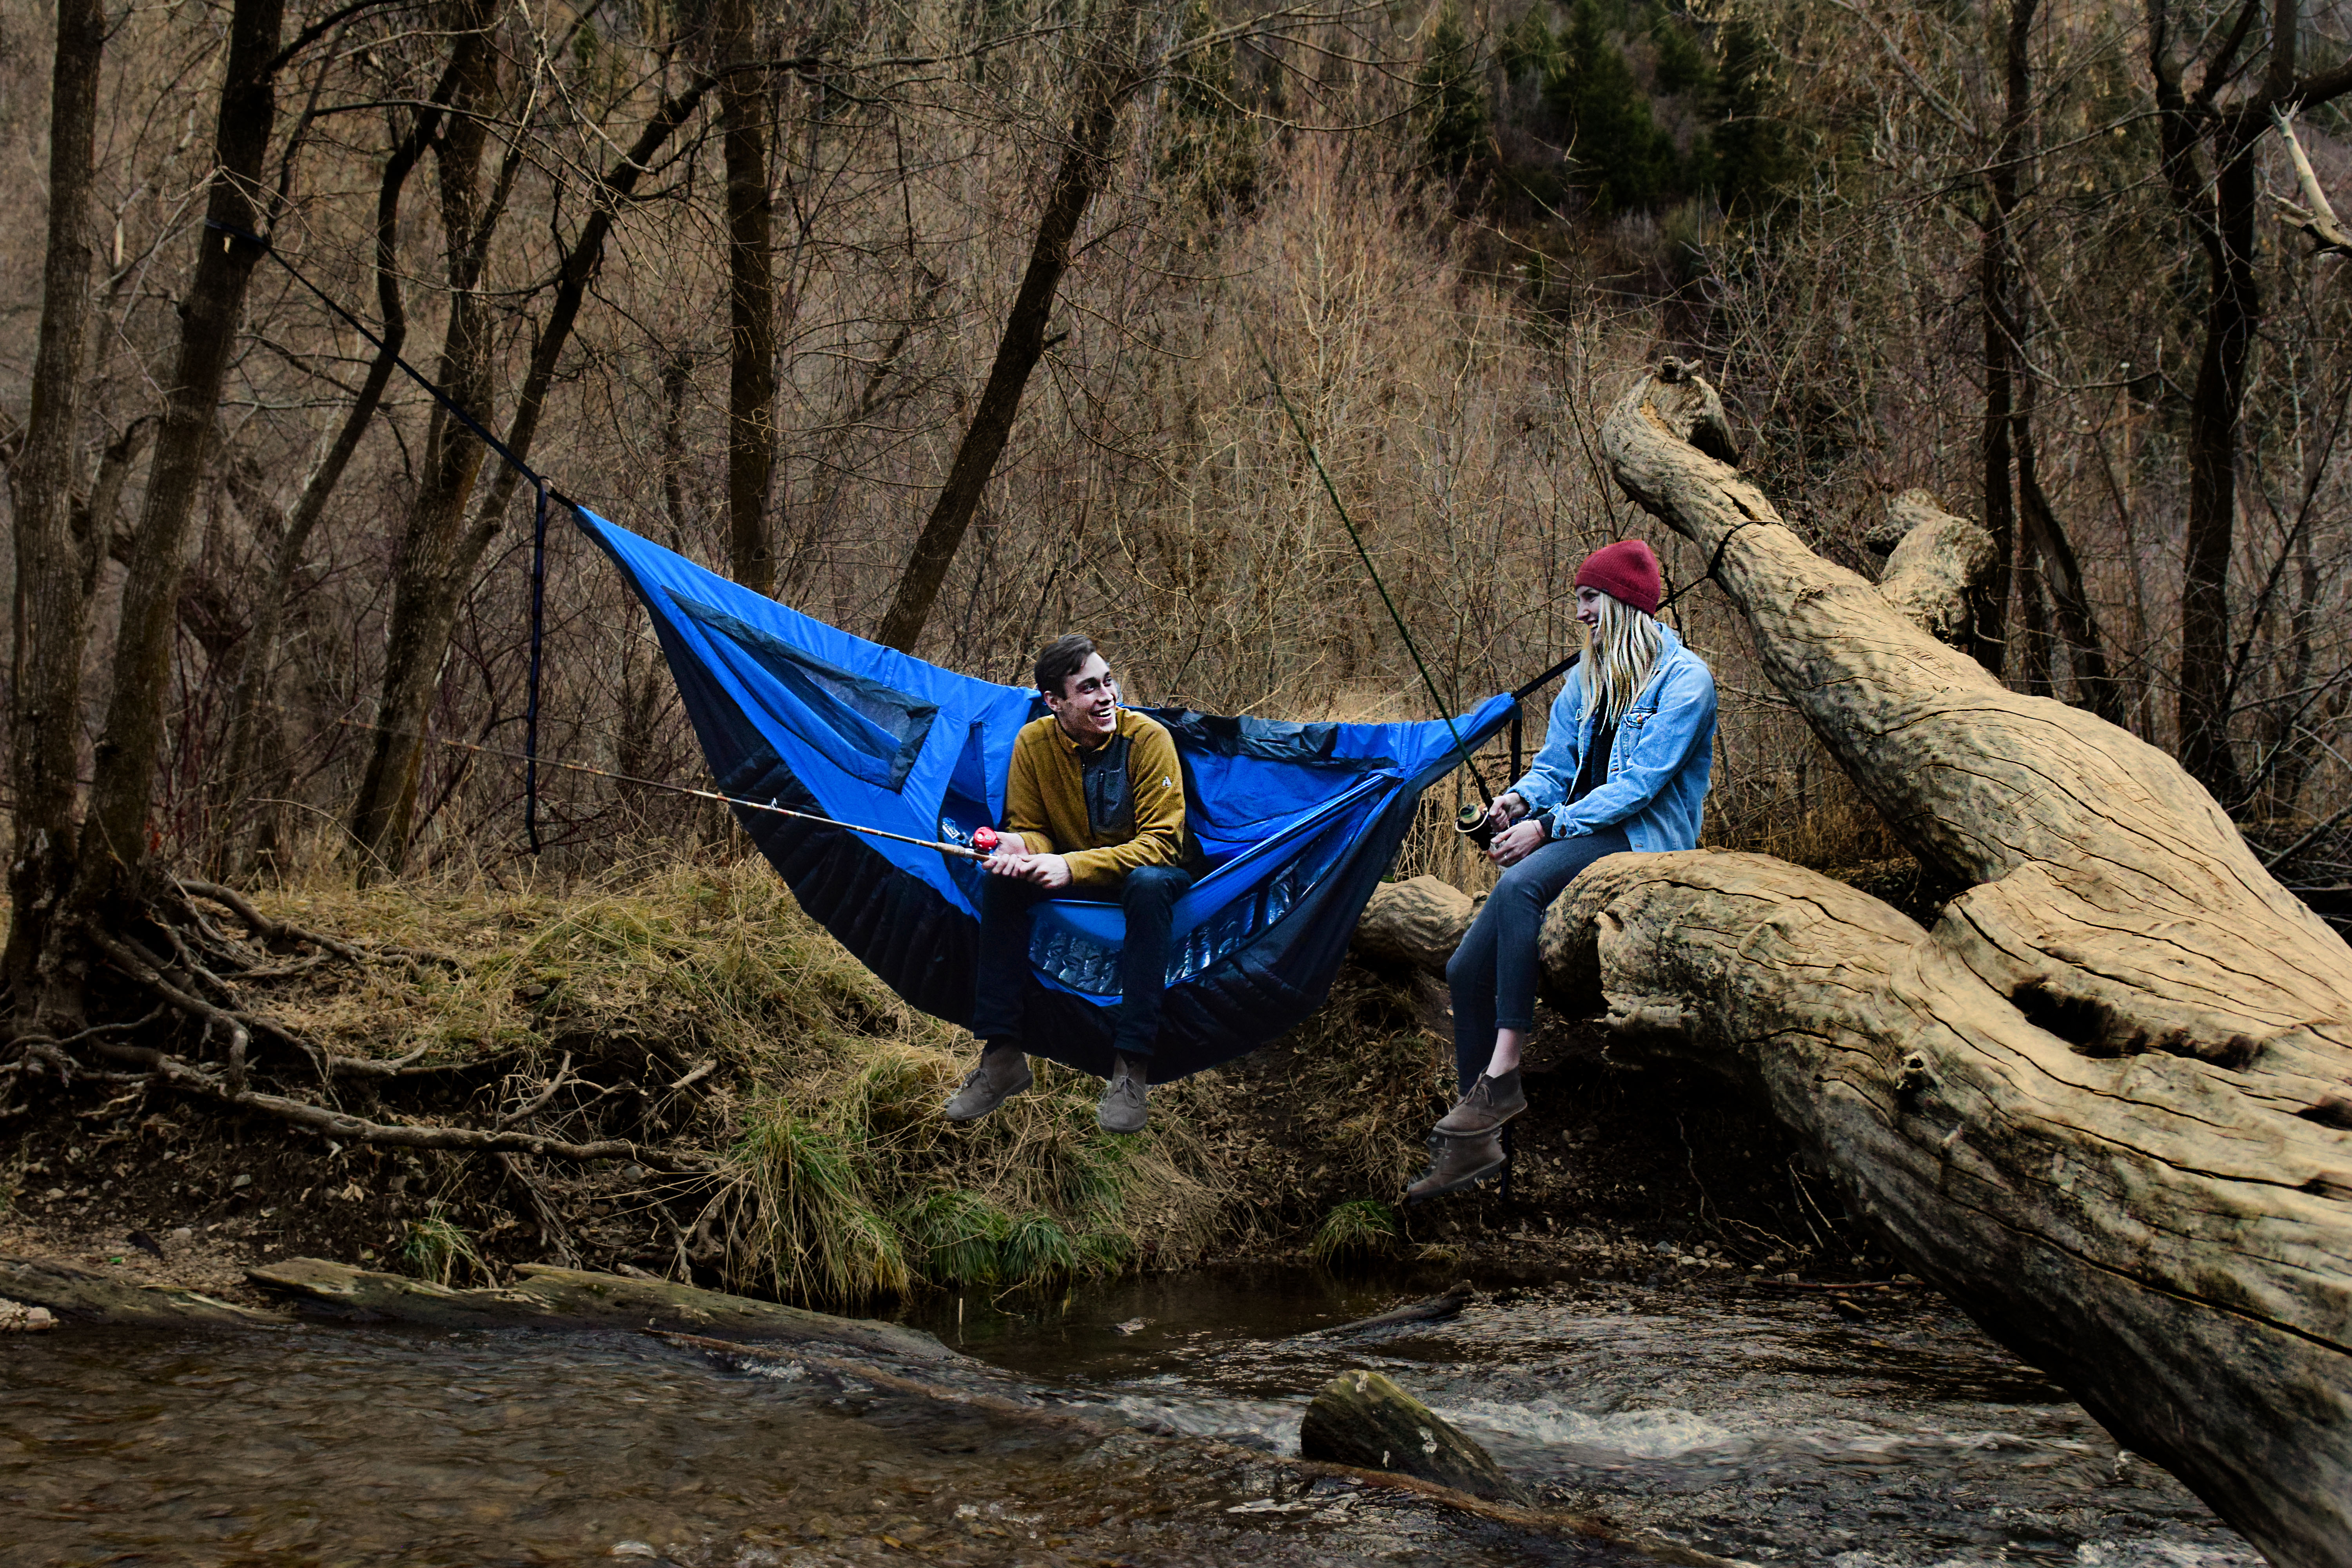 cottage camping shutterstock how to outdoors with beginner s beginners hammock life camp a guide